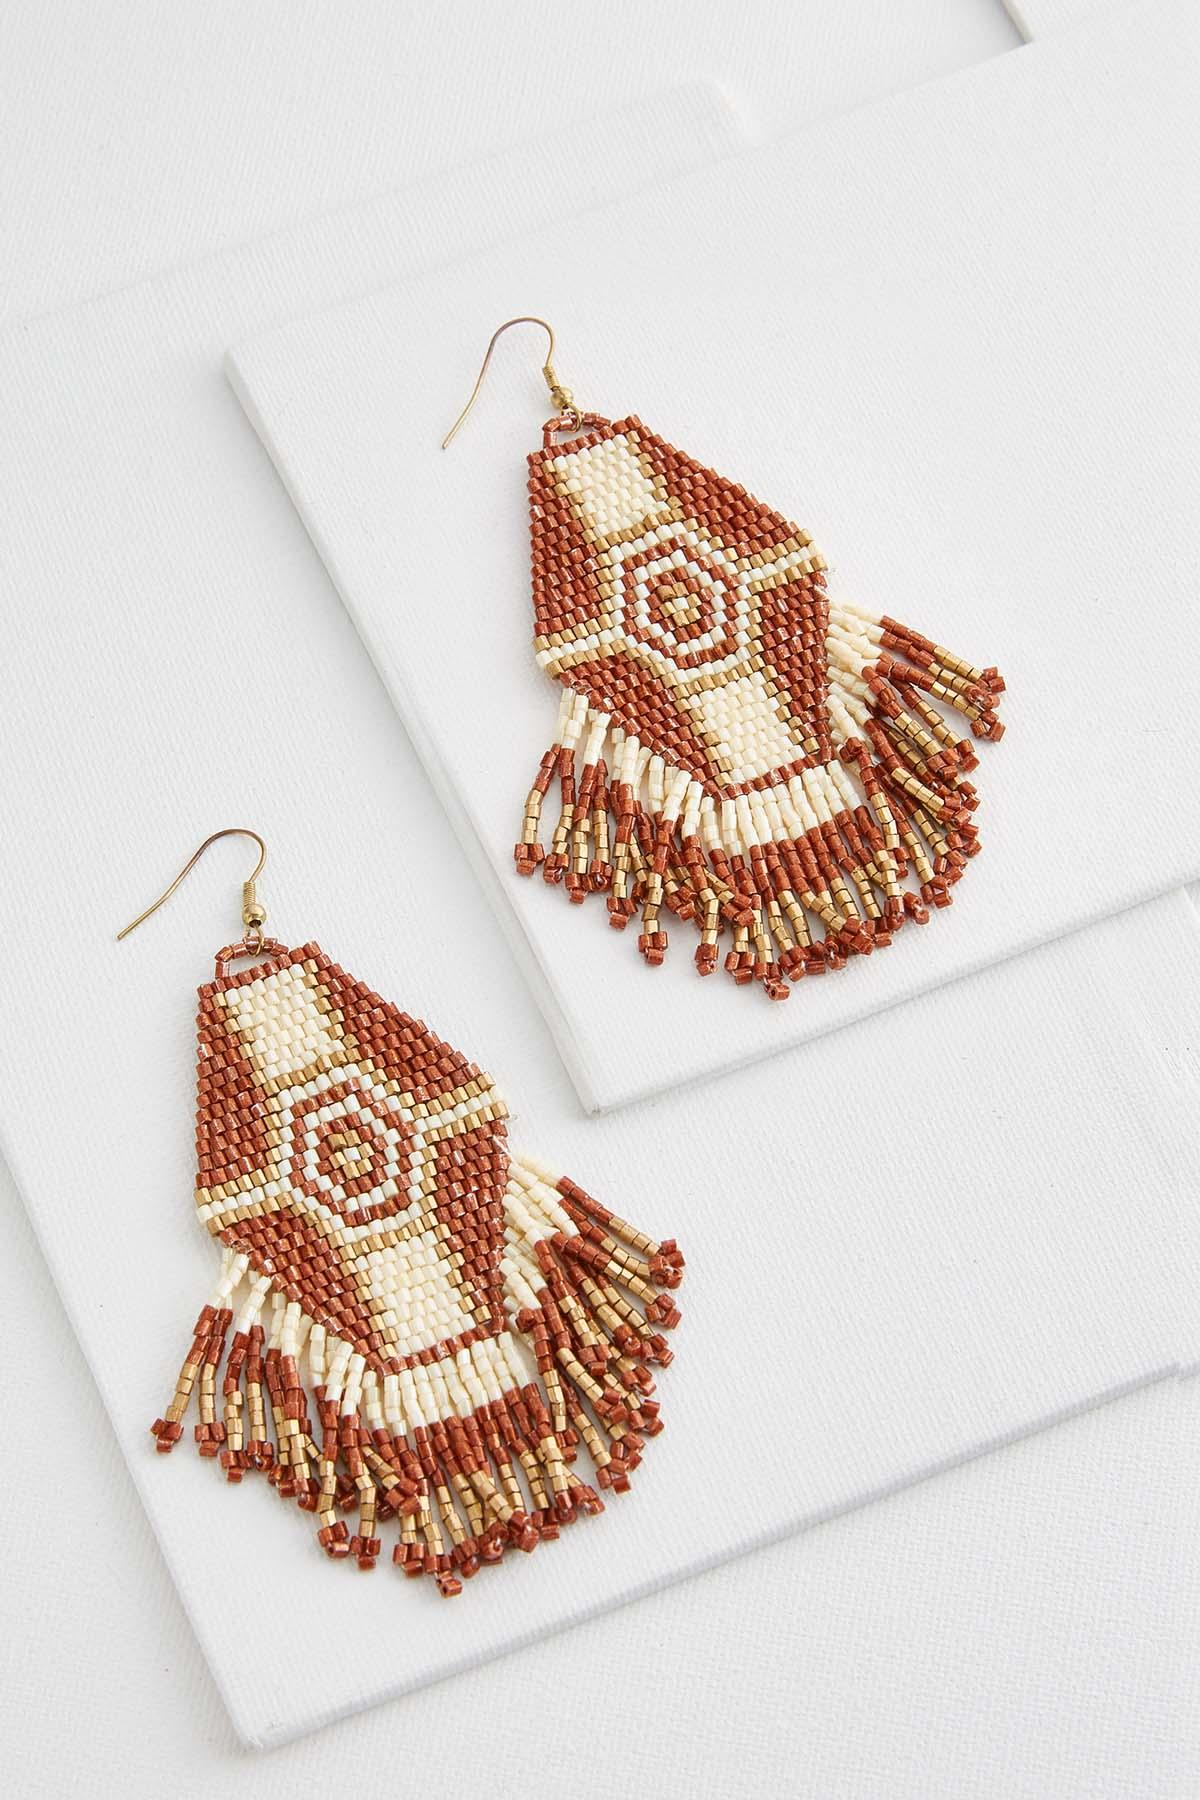 Mosaic Seed Bead Tassel Earrings